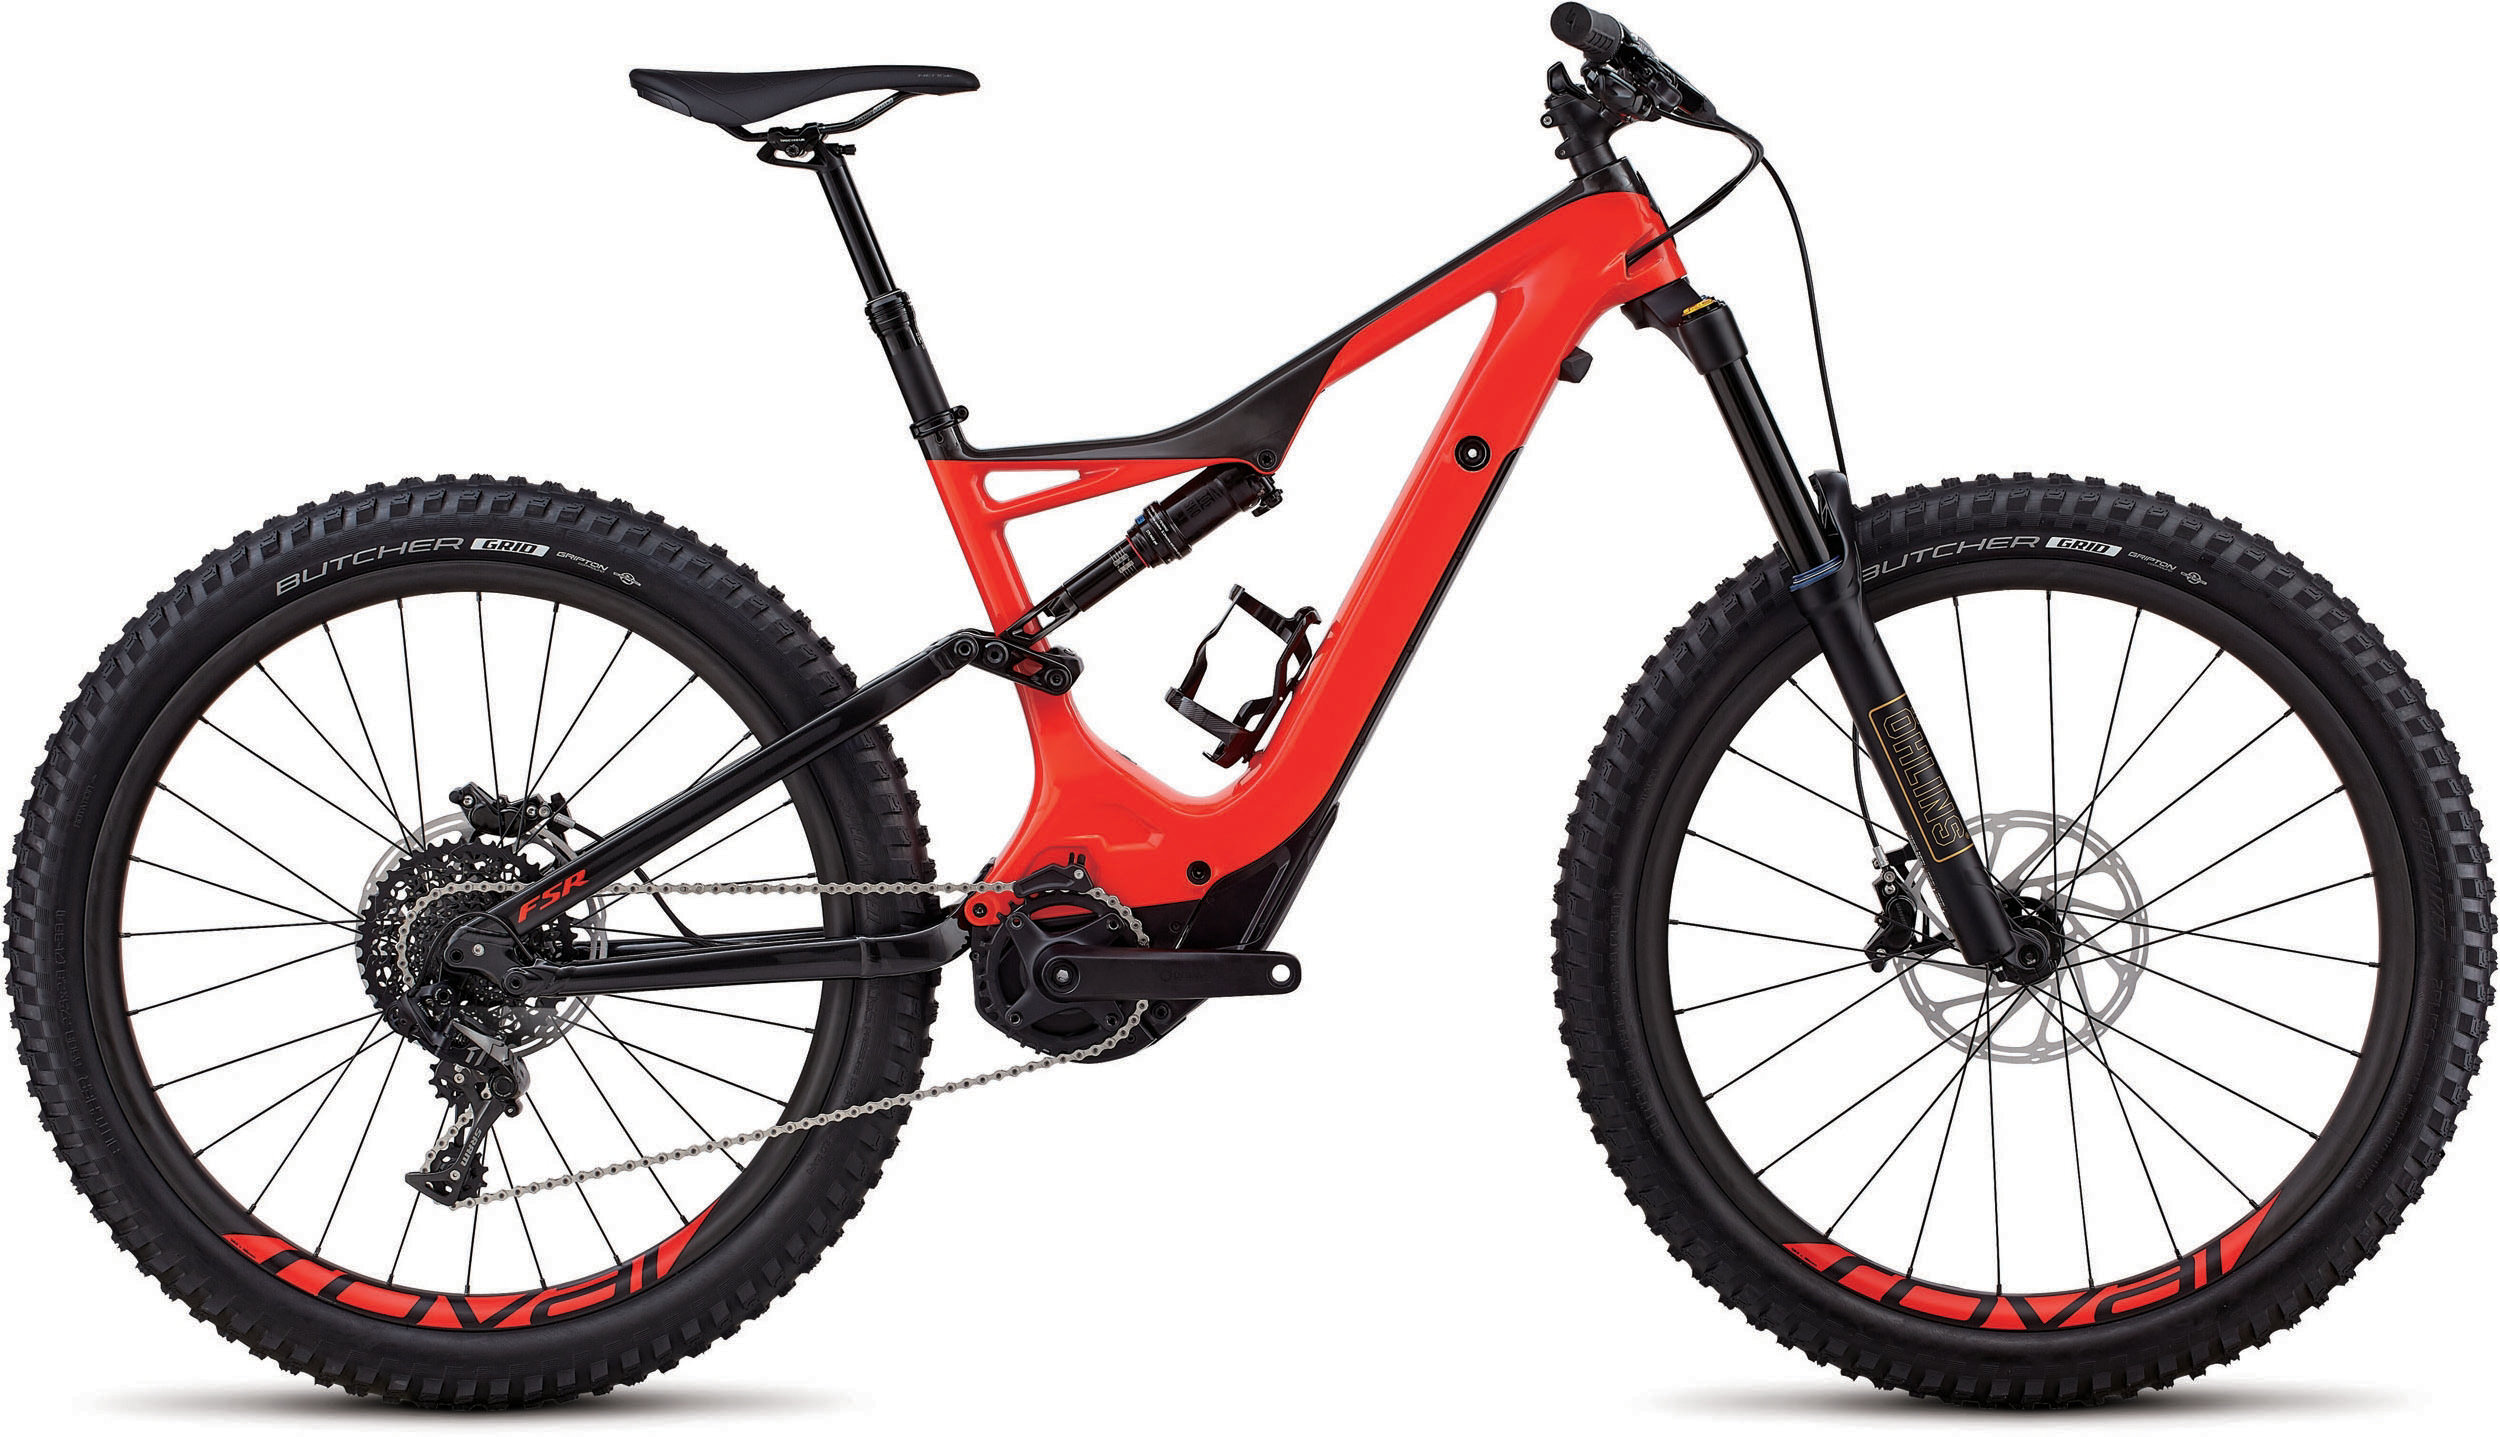 Specialized Men´s Turbo Levo FSR Expert Carbon 6Fattie/29 Gloss Rocket Red / Carbon XL - schneider-sports